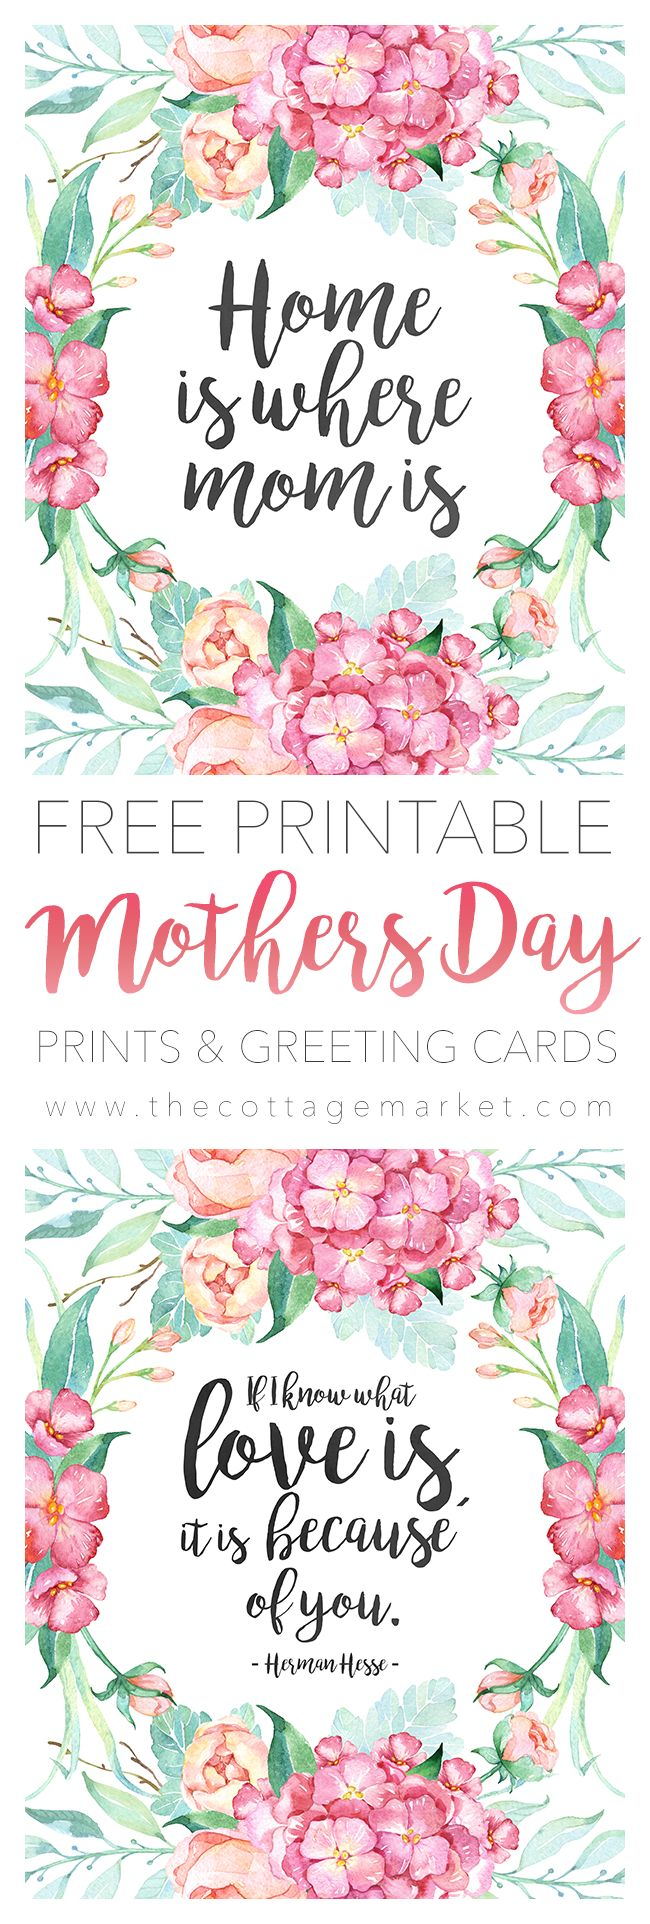 382 Best Mother S Day Images On Pinterest Gift Ideas Printable